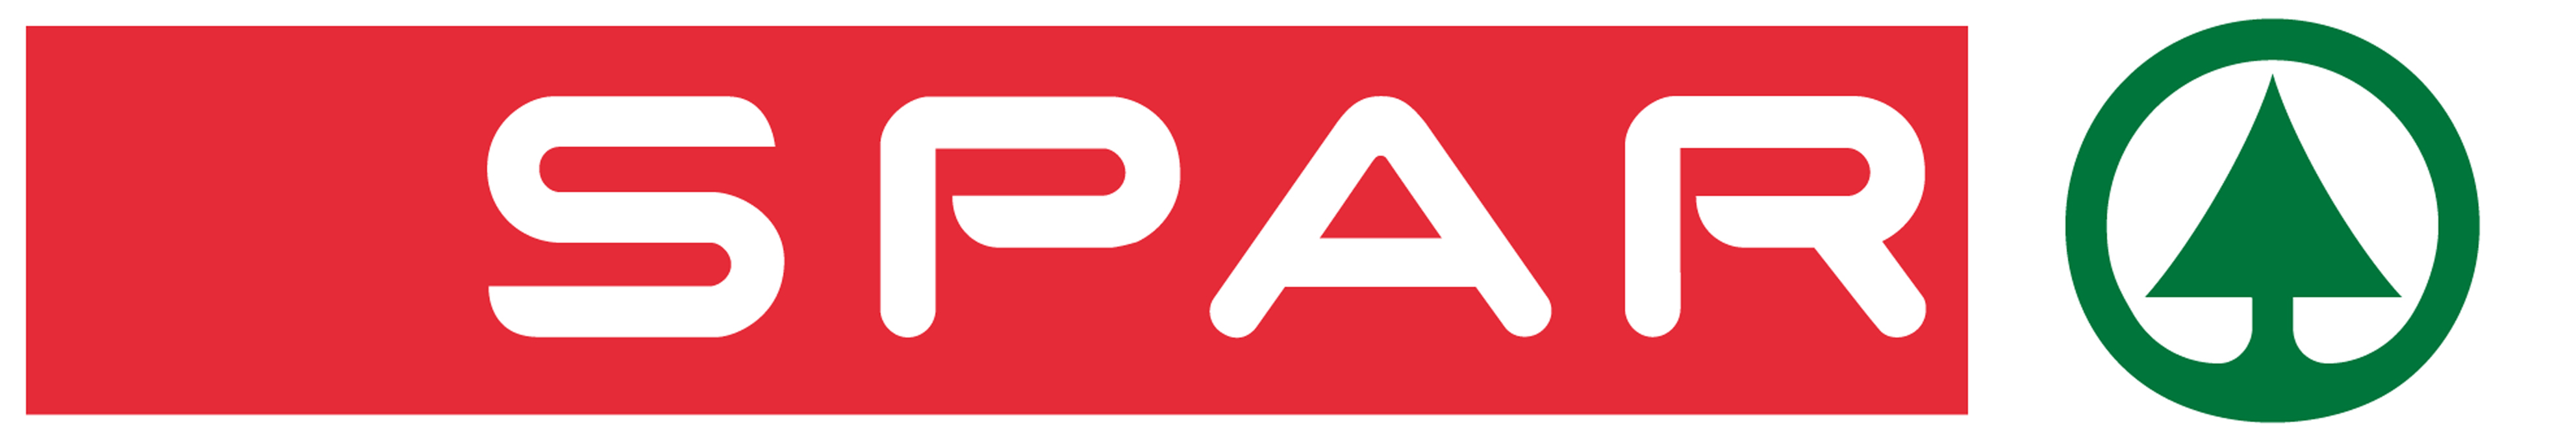 SPAR | Downloaden originele SPAR logo's